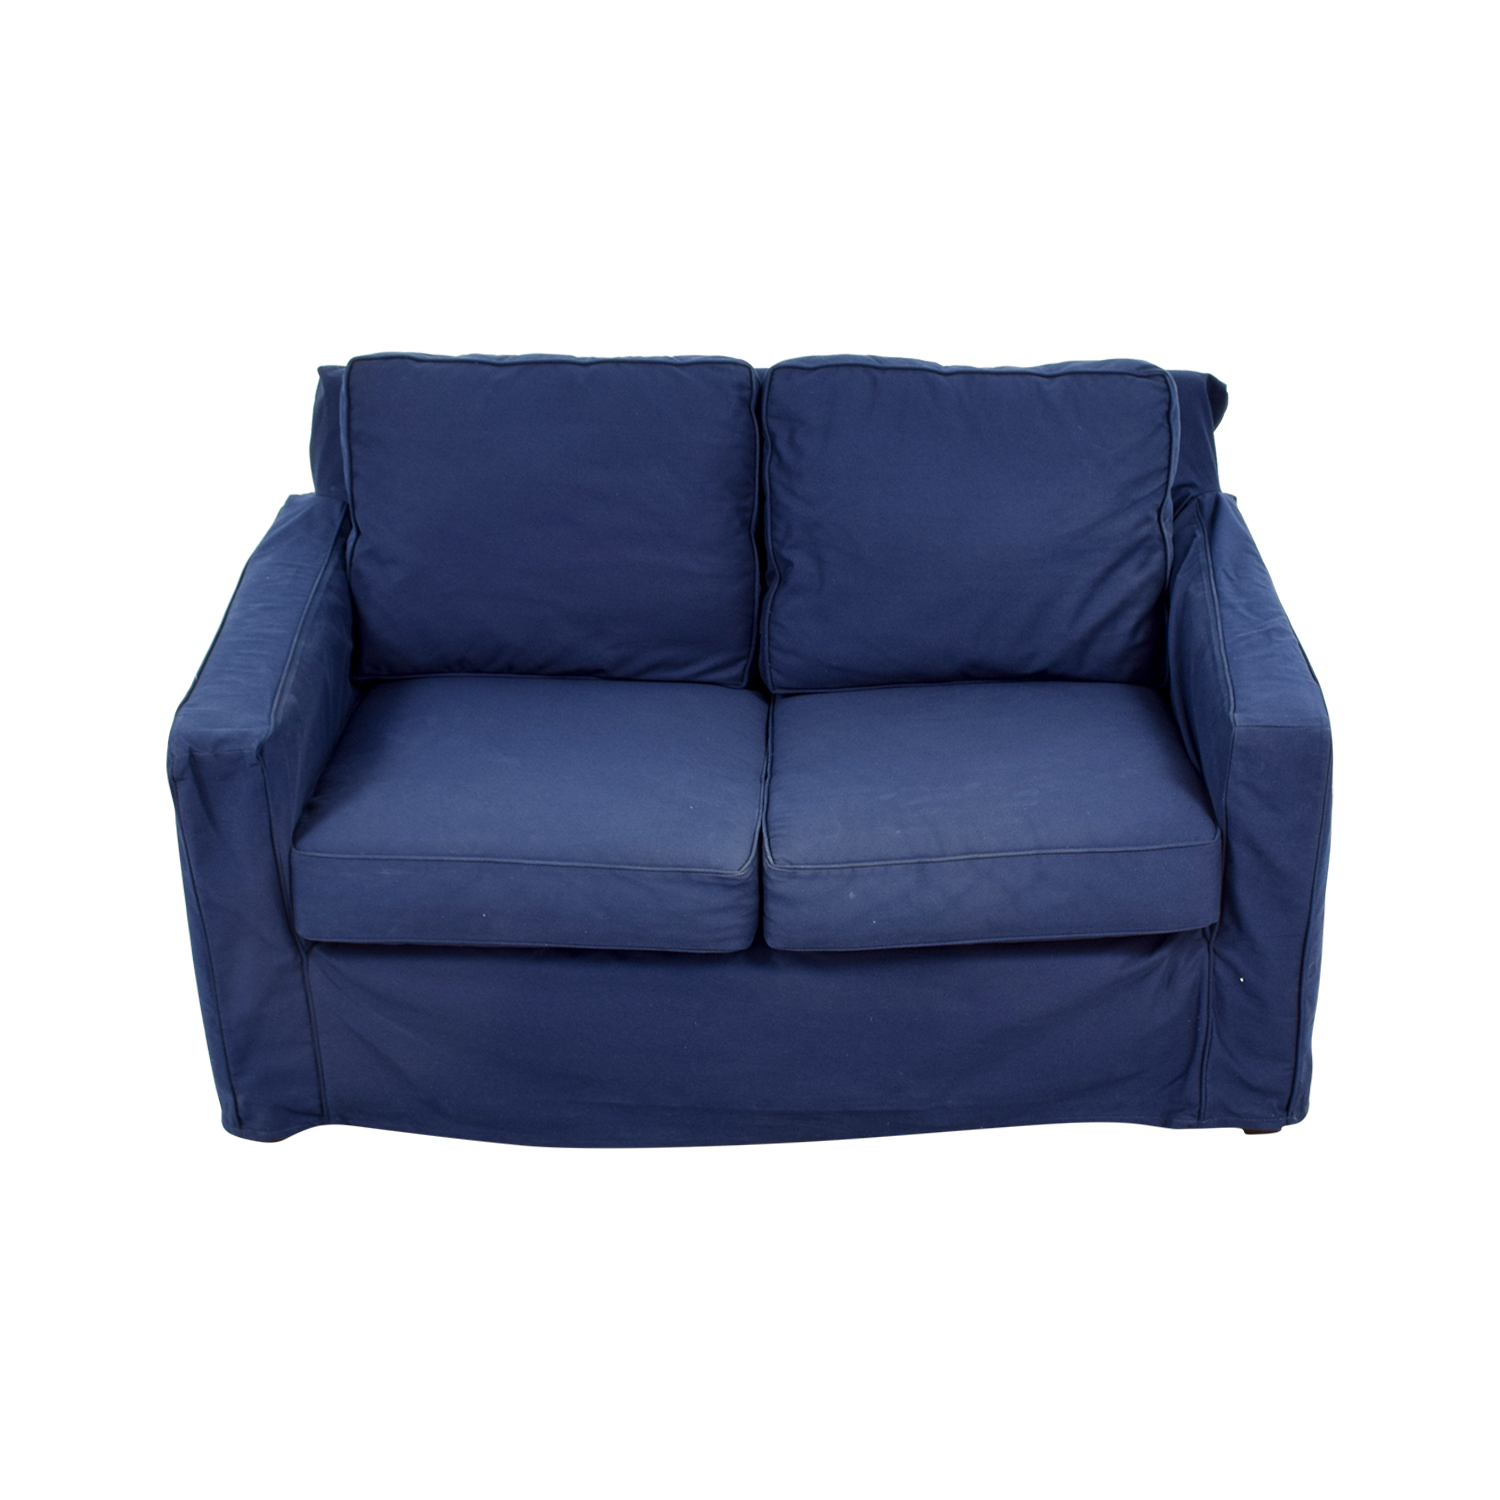 buy Pottery Barn Pottery Barn Cameron Navy Twill Slipcovered Loveseat online